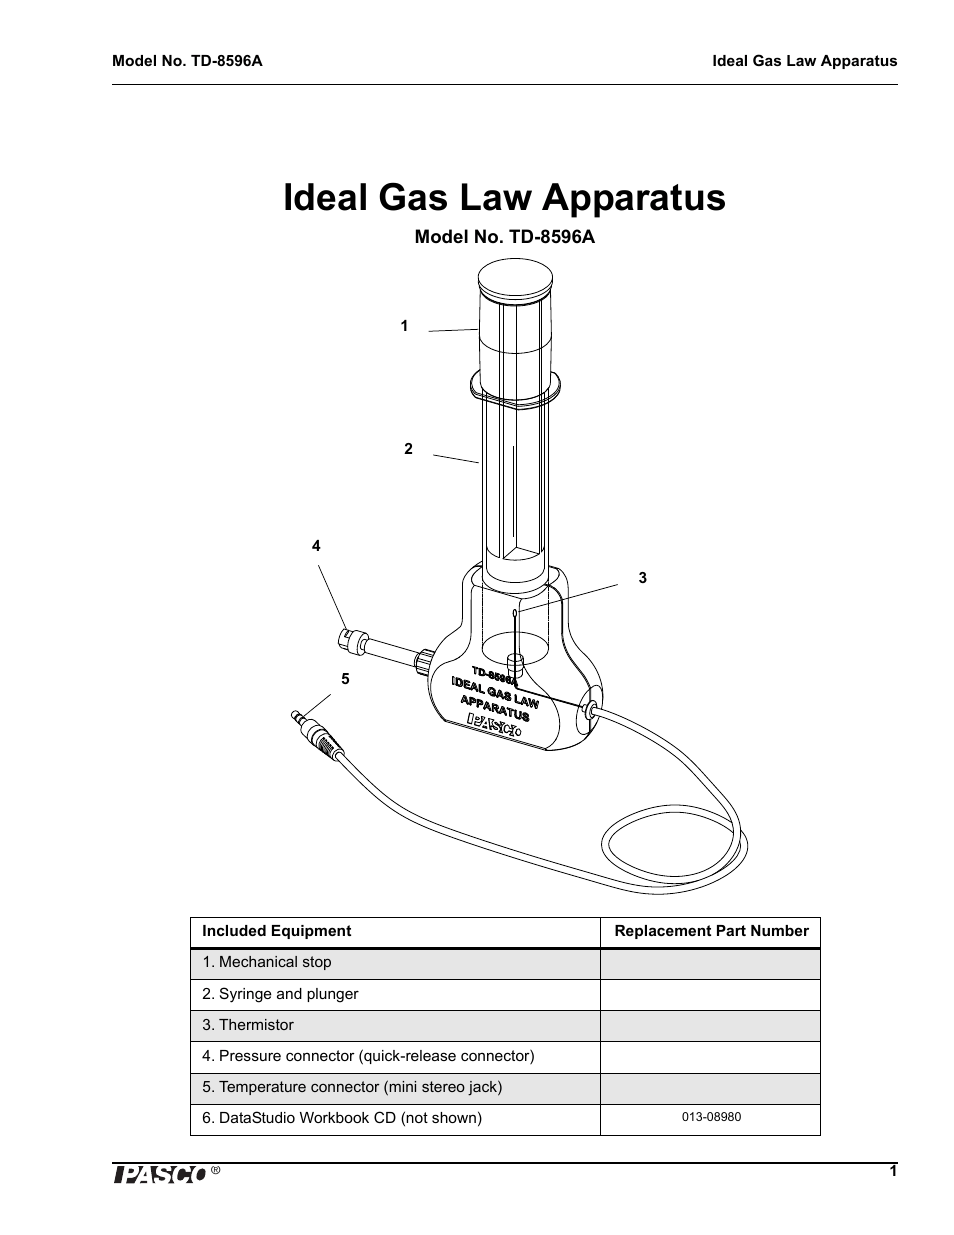 medium resolution of ideal gas law apparatus pasco td 8596a ideal gas law apparatus user manual page 3 12